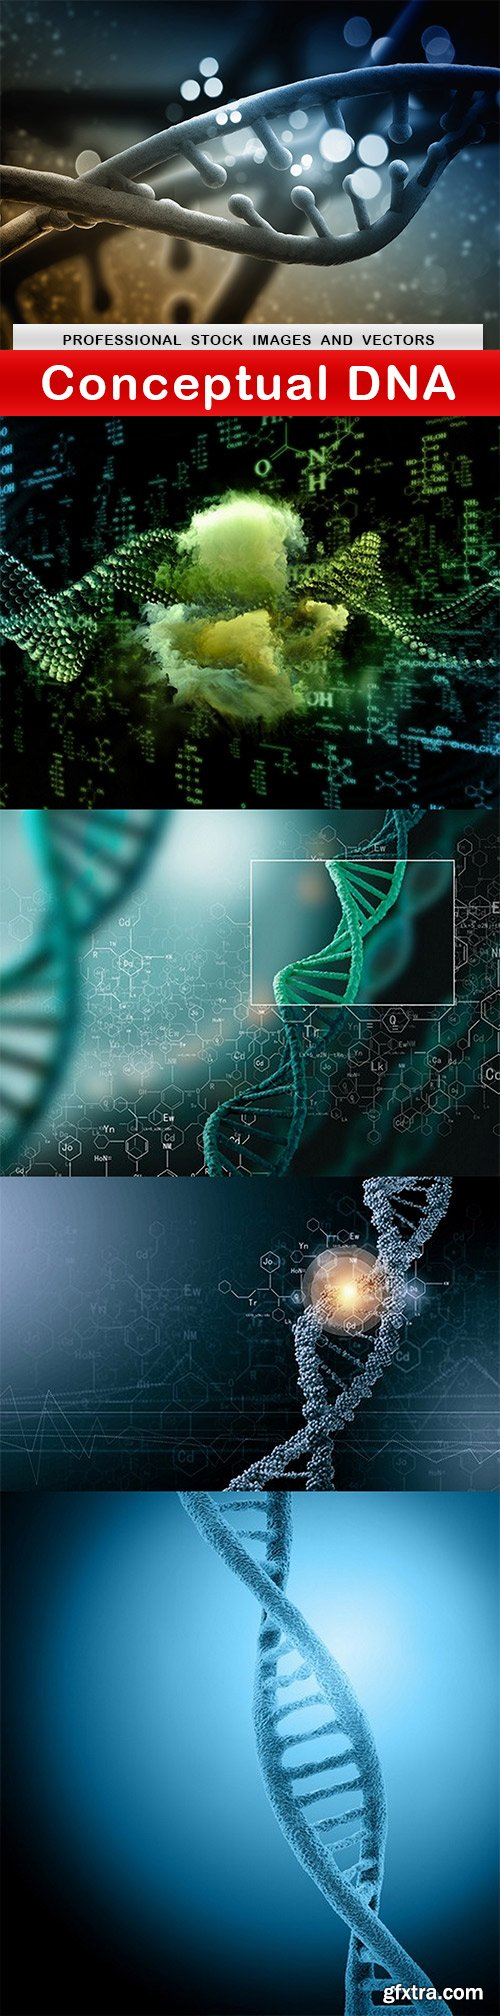 Conceptual DNA - 5 UHQ JPEG